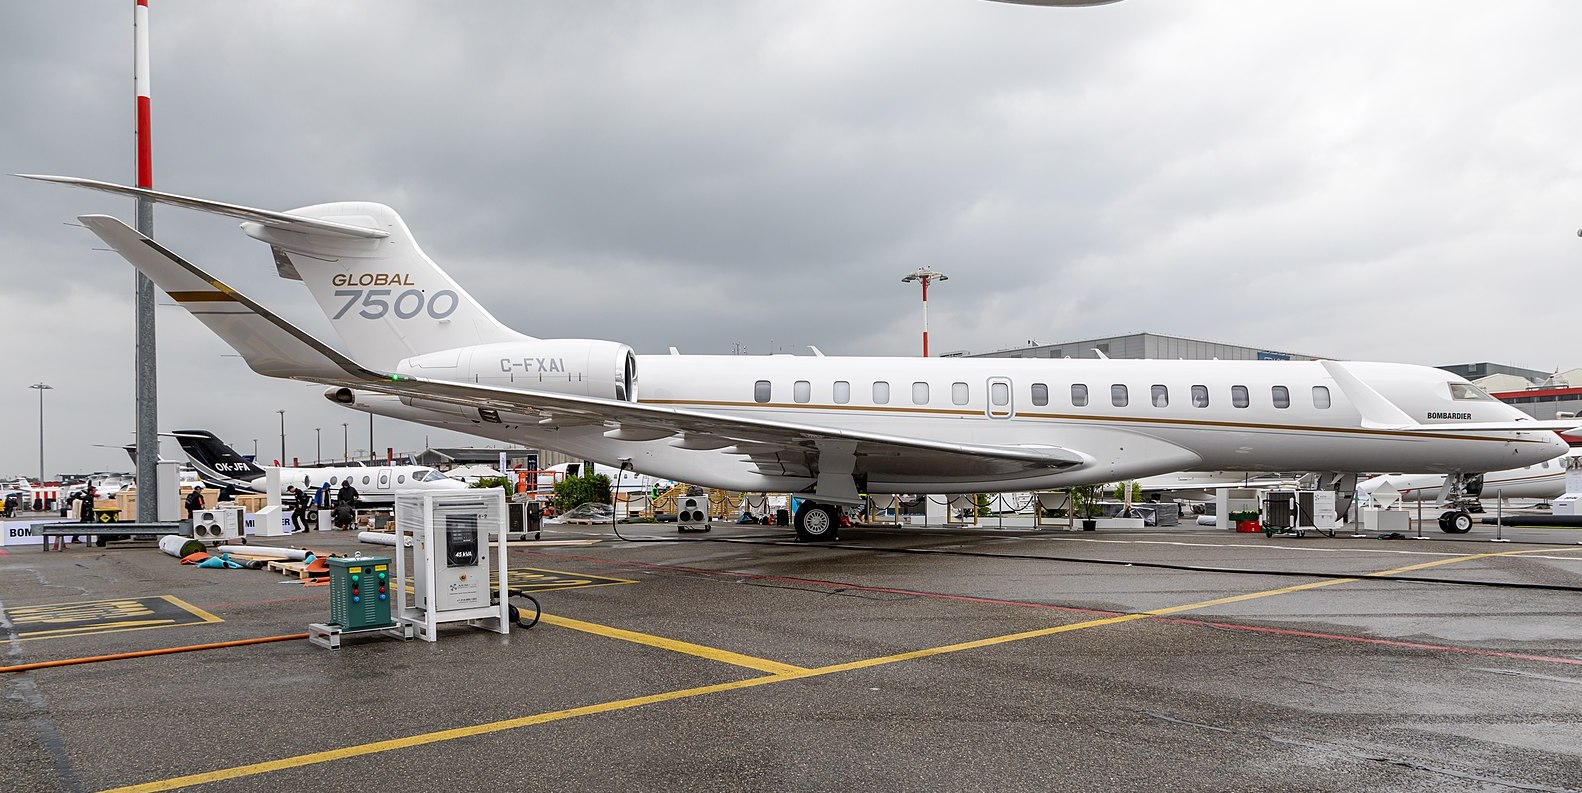 Avion neuf Bombardier Global 7500